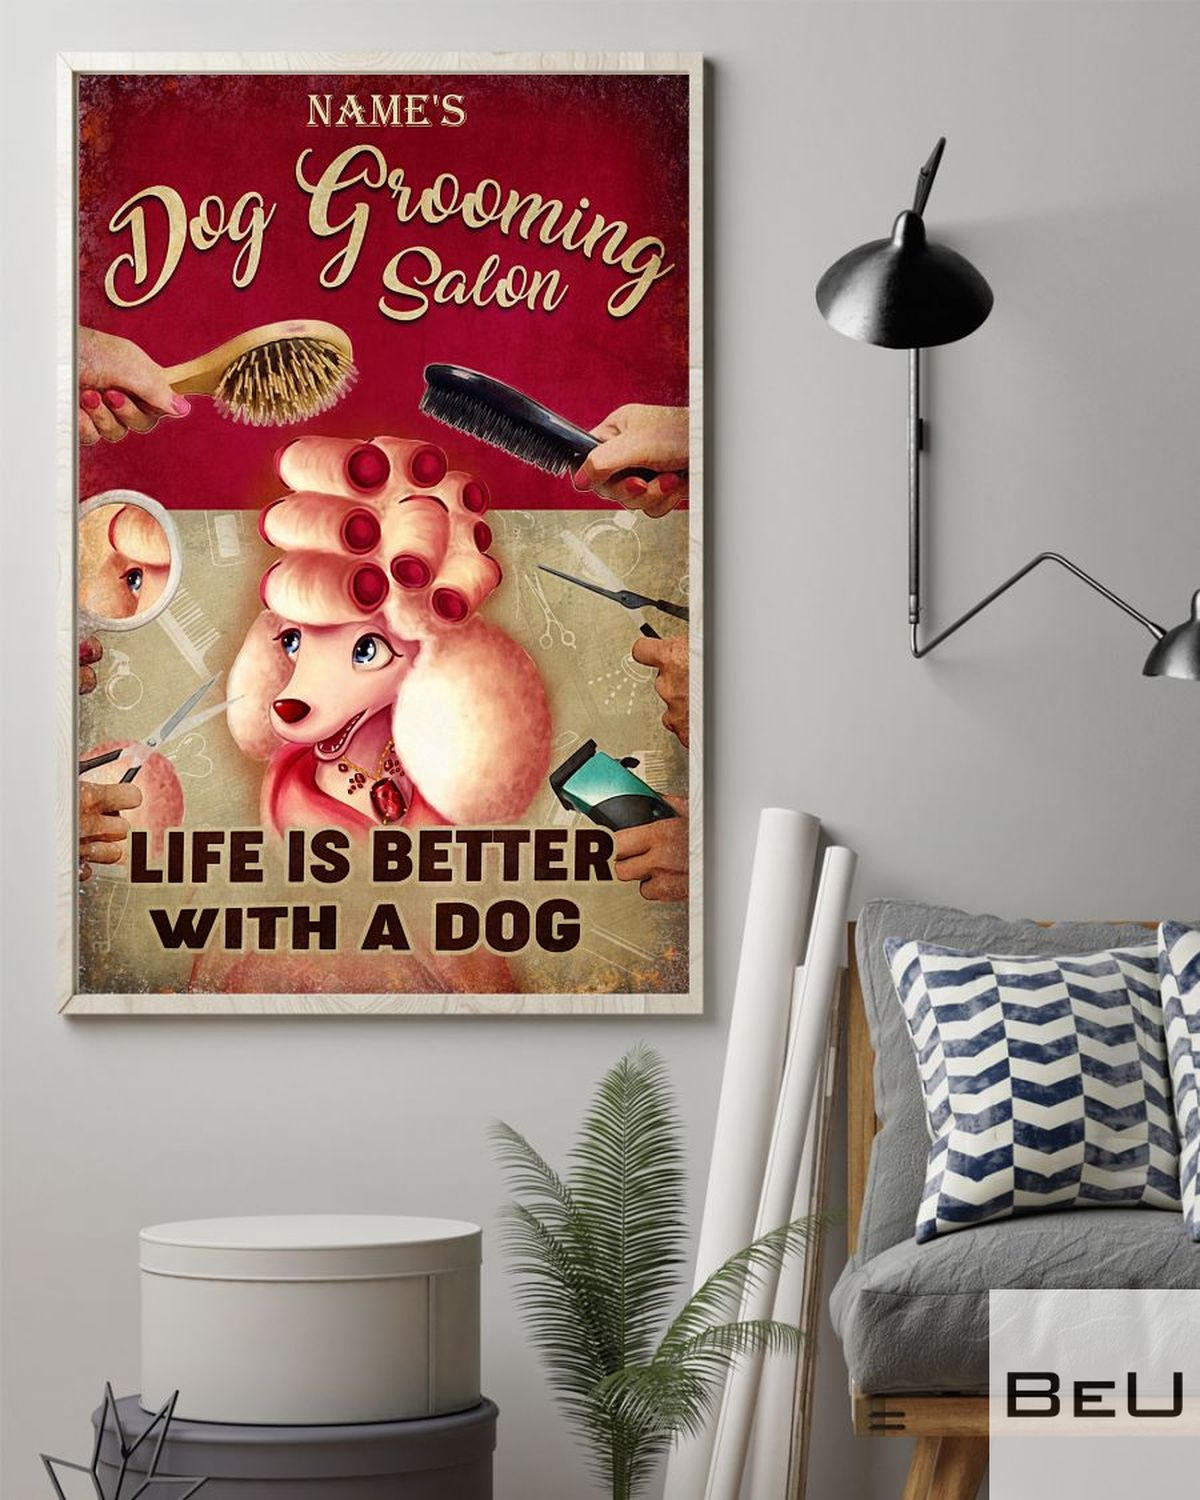 Personalized Dog Gooming Salon Life Is Better With A Dog Posterz